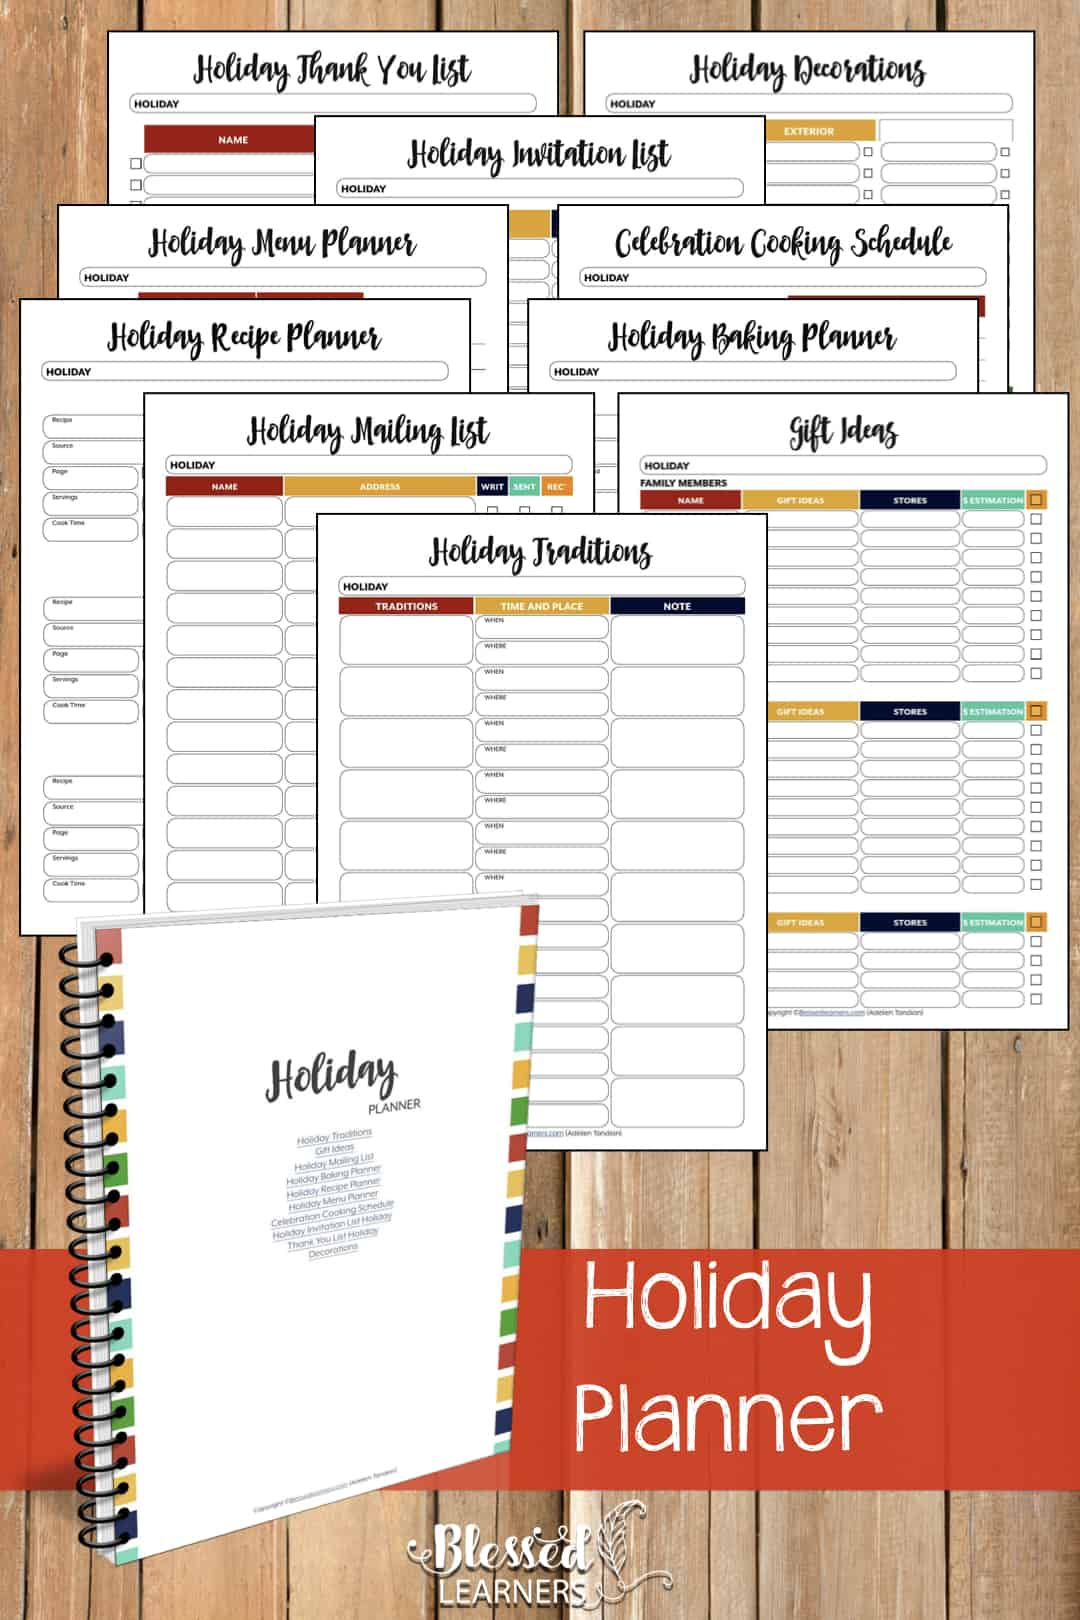 200 Pages Of Ultimate Life Planner Organizer